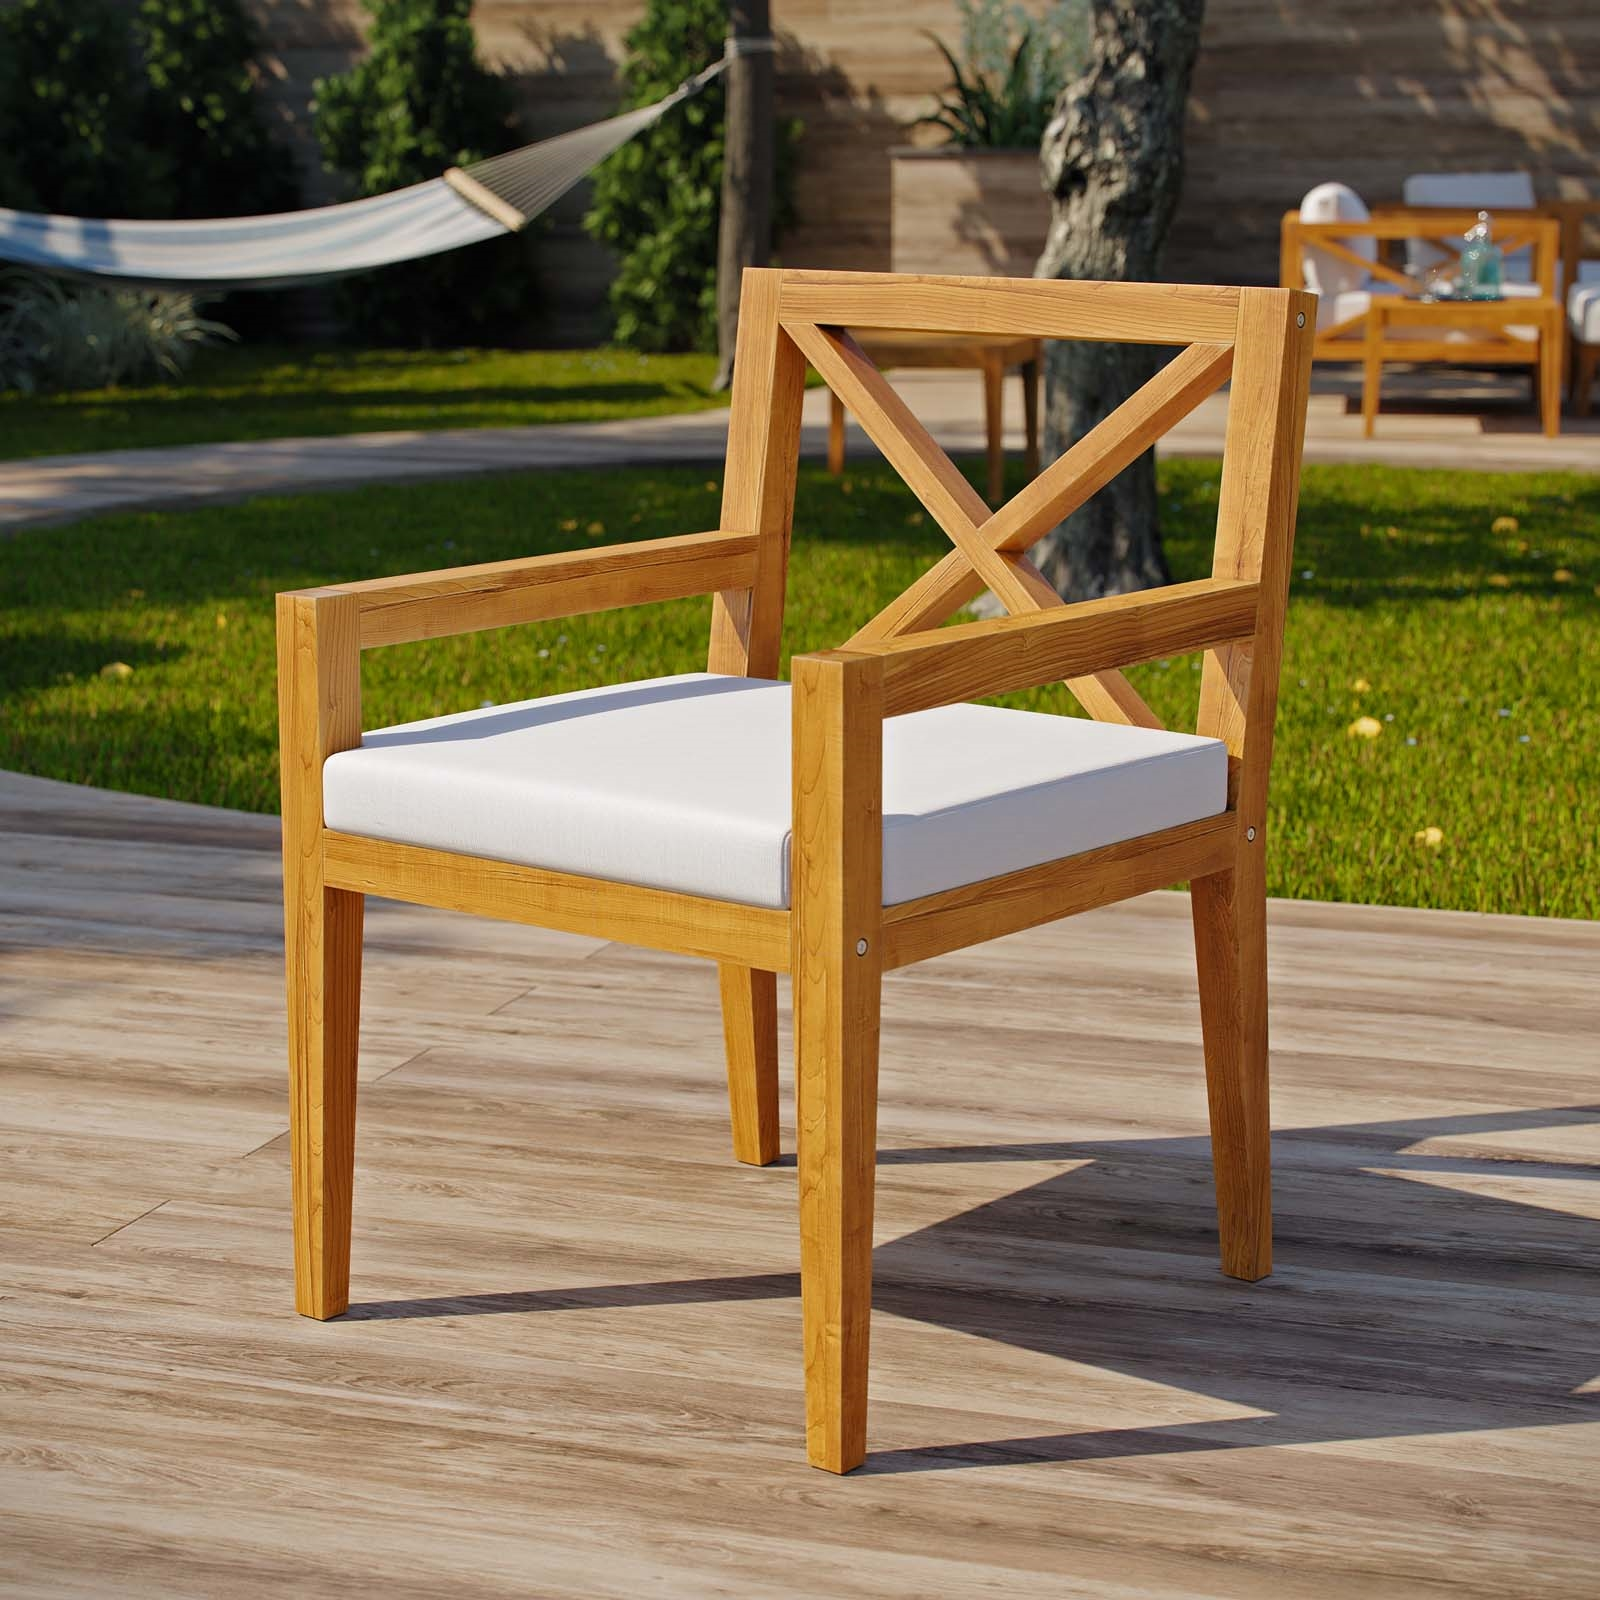 Northlake Outdoor Patio Premium Grade A Teak Wood Dining Armchair in Natural White